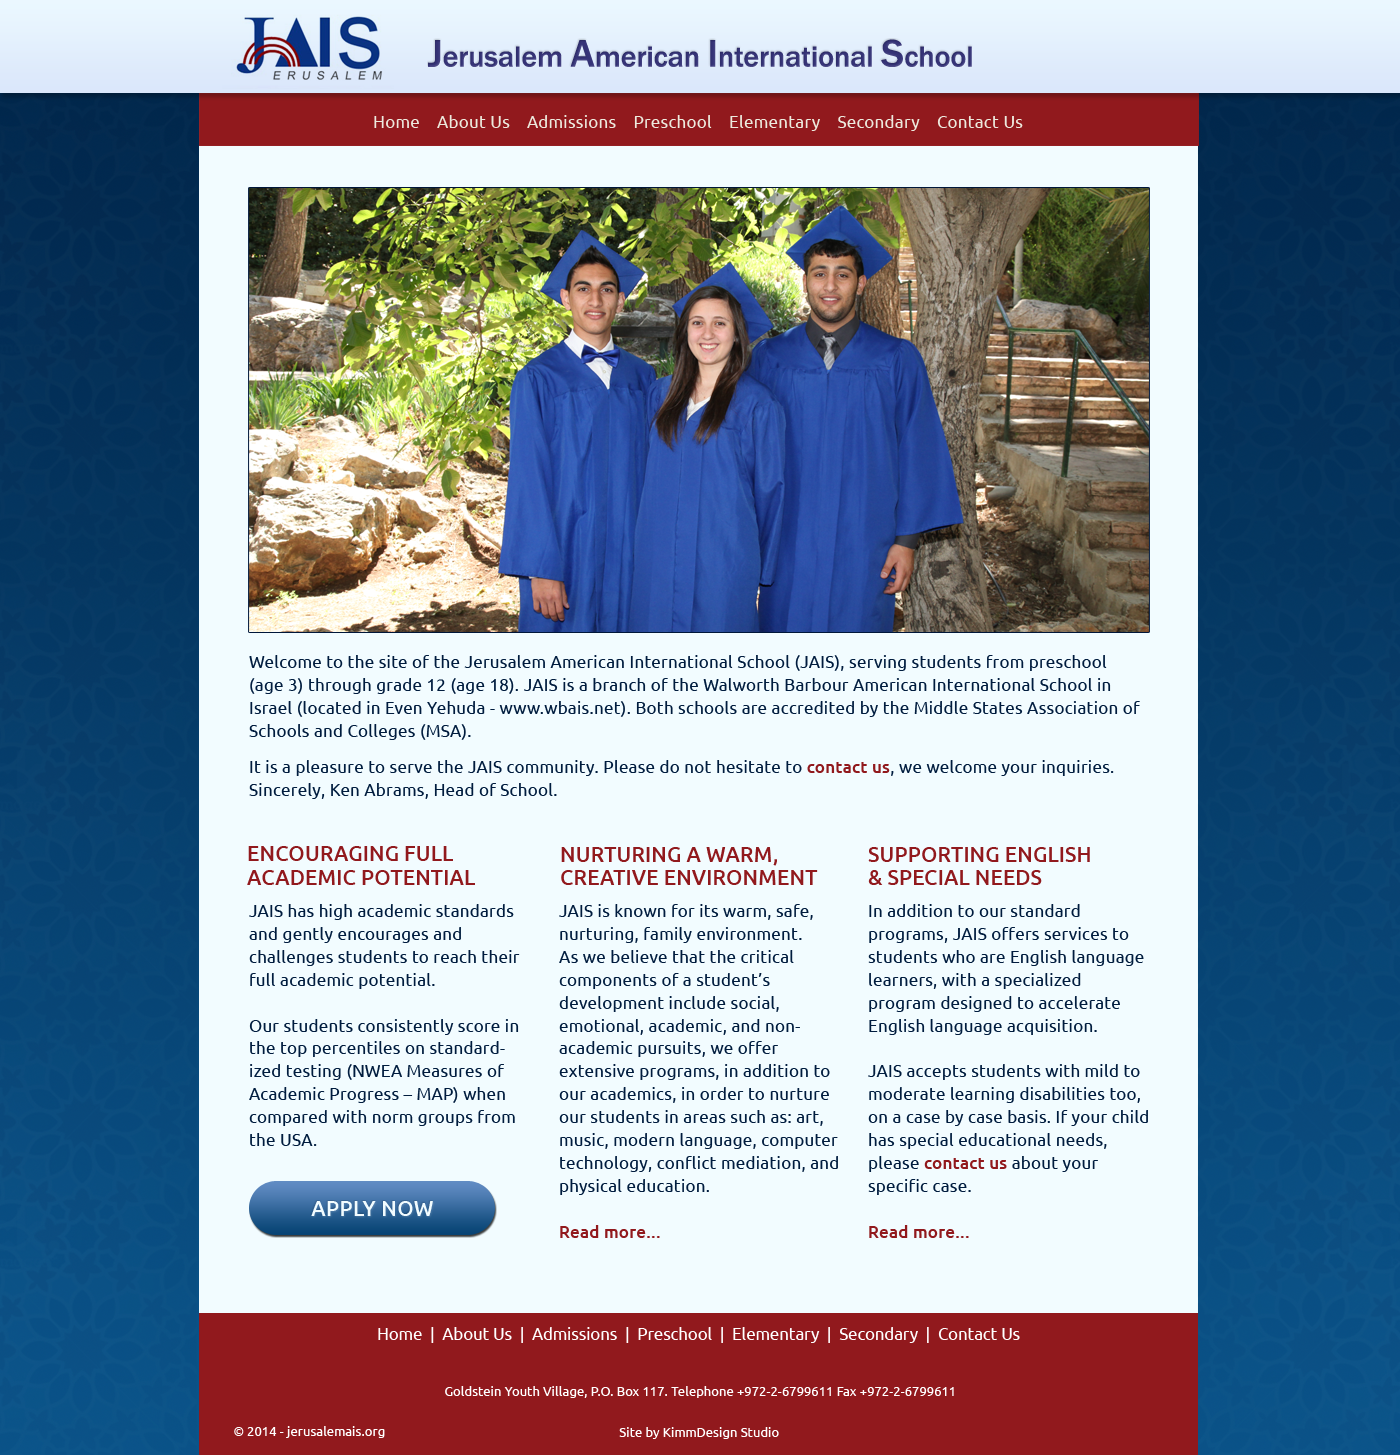 Jerusalem American International School (JAIS) home page design image